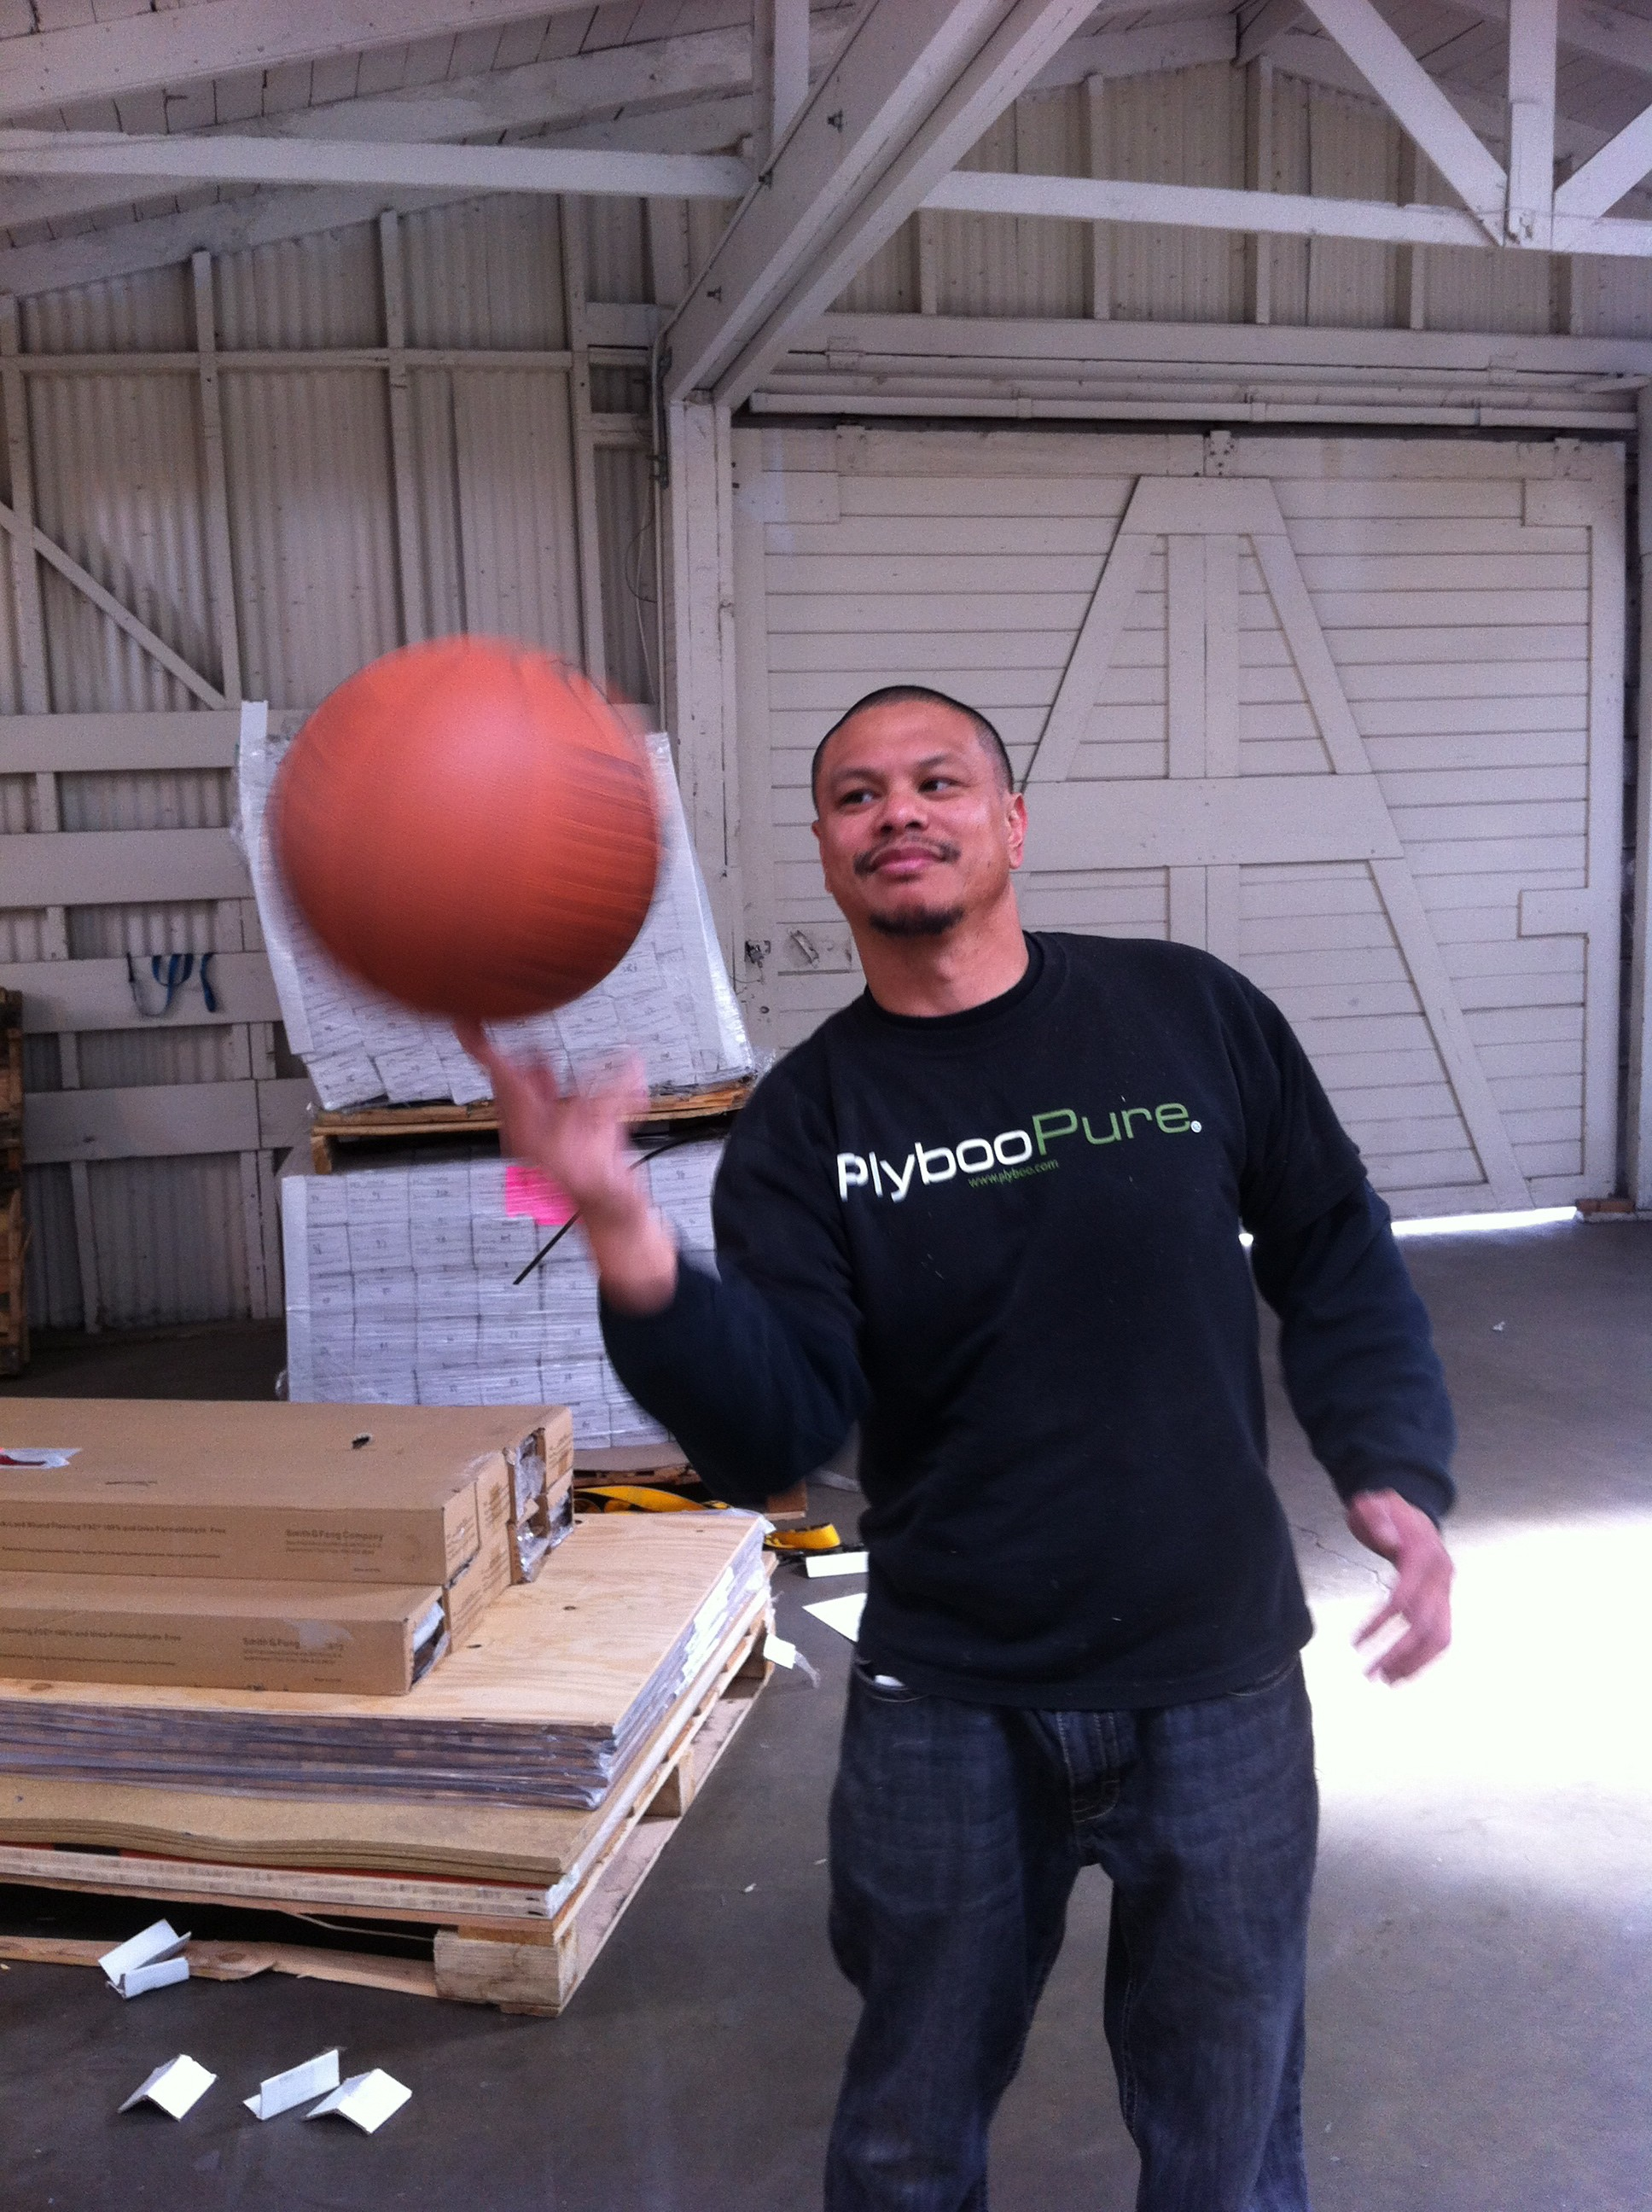 plyboosport  basketball court